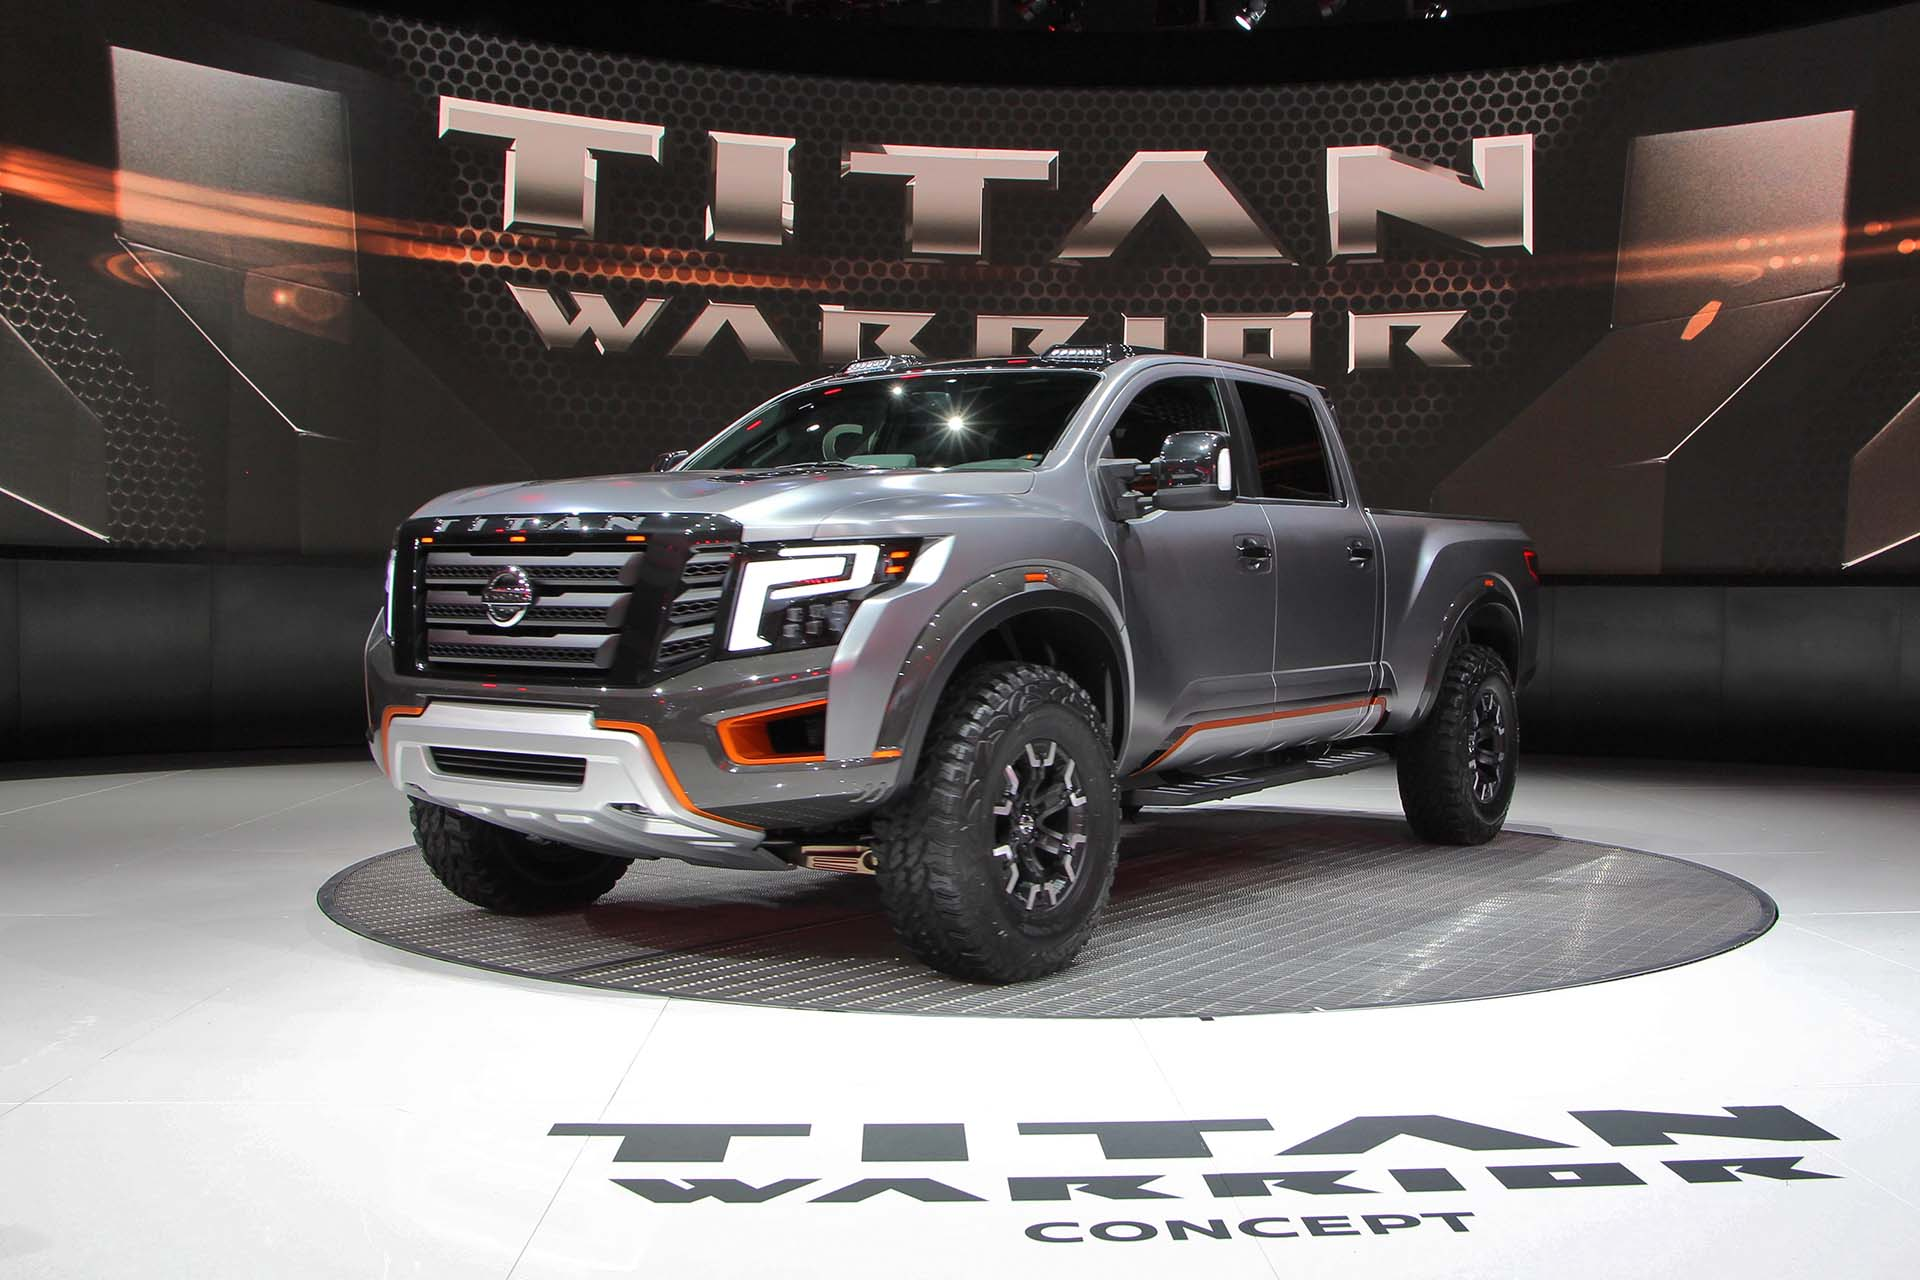 We imagine the designers at Nissan looked at their handiwork and thought: Yes, it's called the Titan. Yes, it's got a diesel engine. But is it hardcore enough? Well, mission accomplished, Nissan – the Titan Warrior concept looks ready for the zombie apocalypse (and will haul six months of supplies to boot).